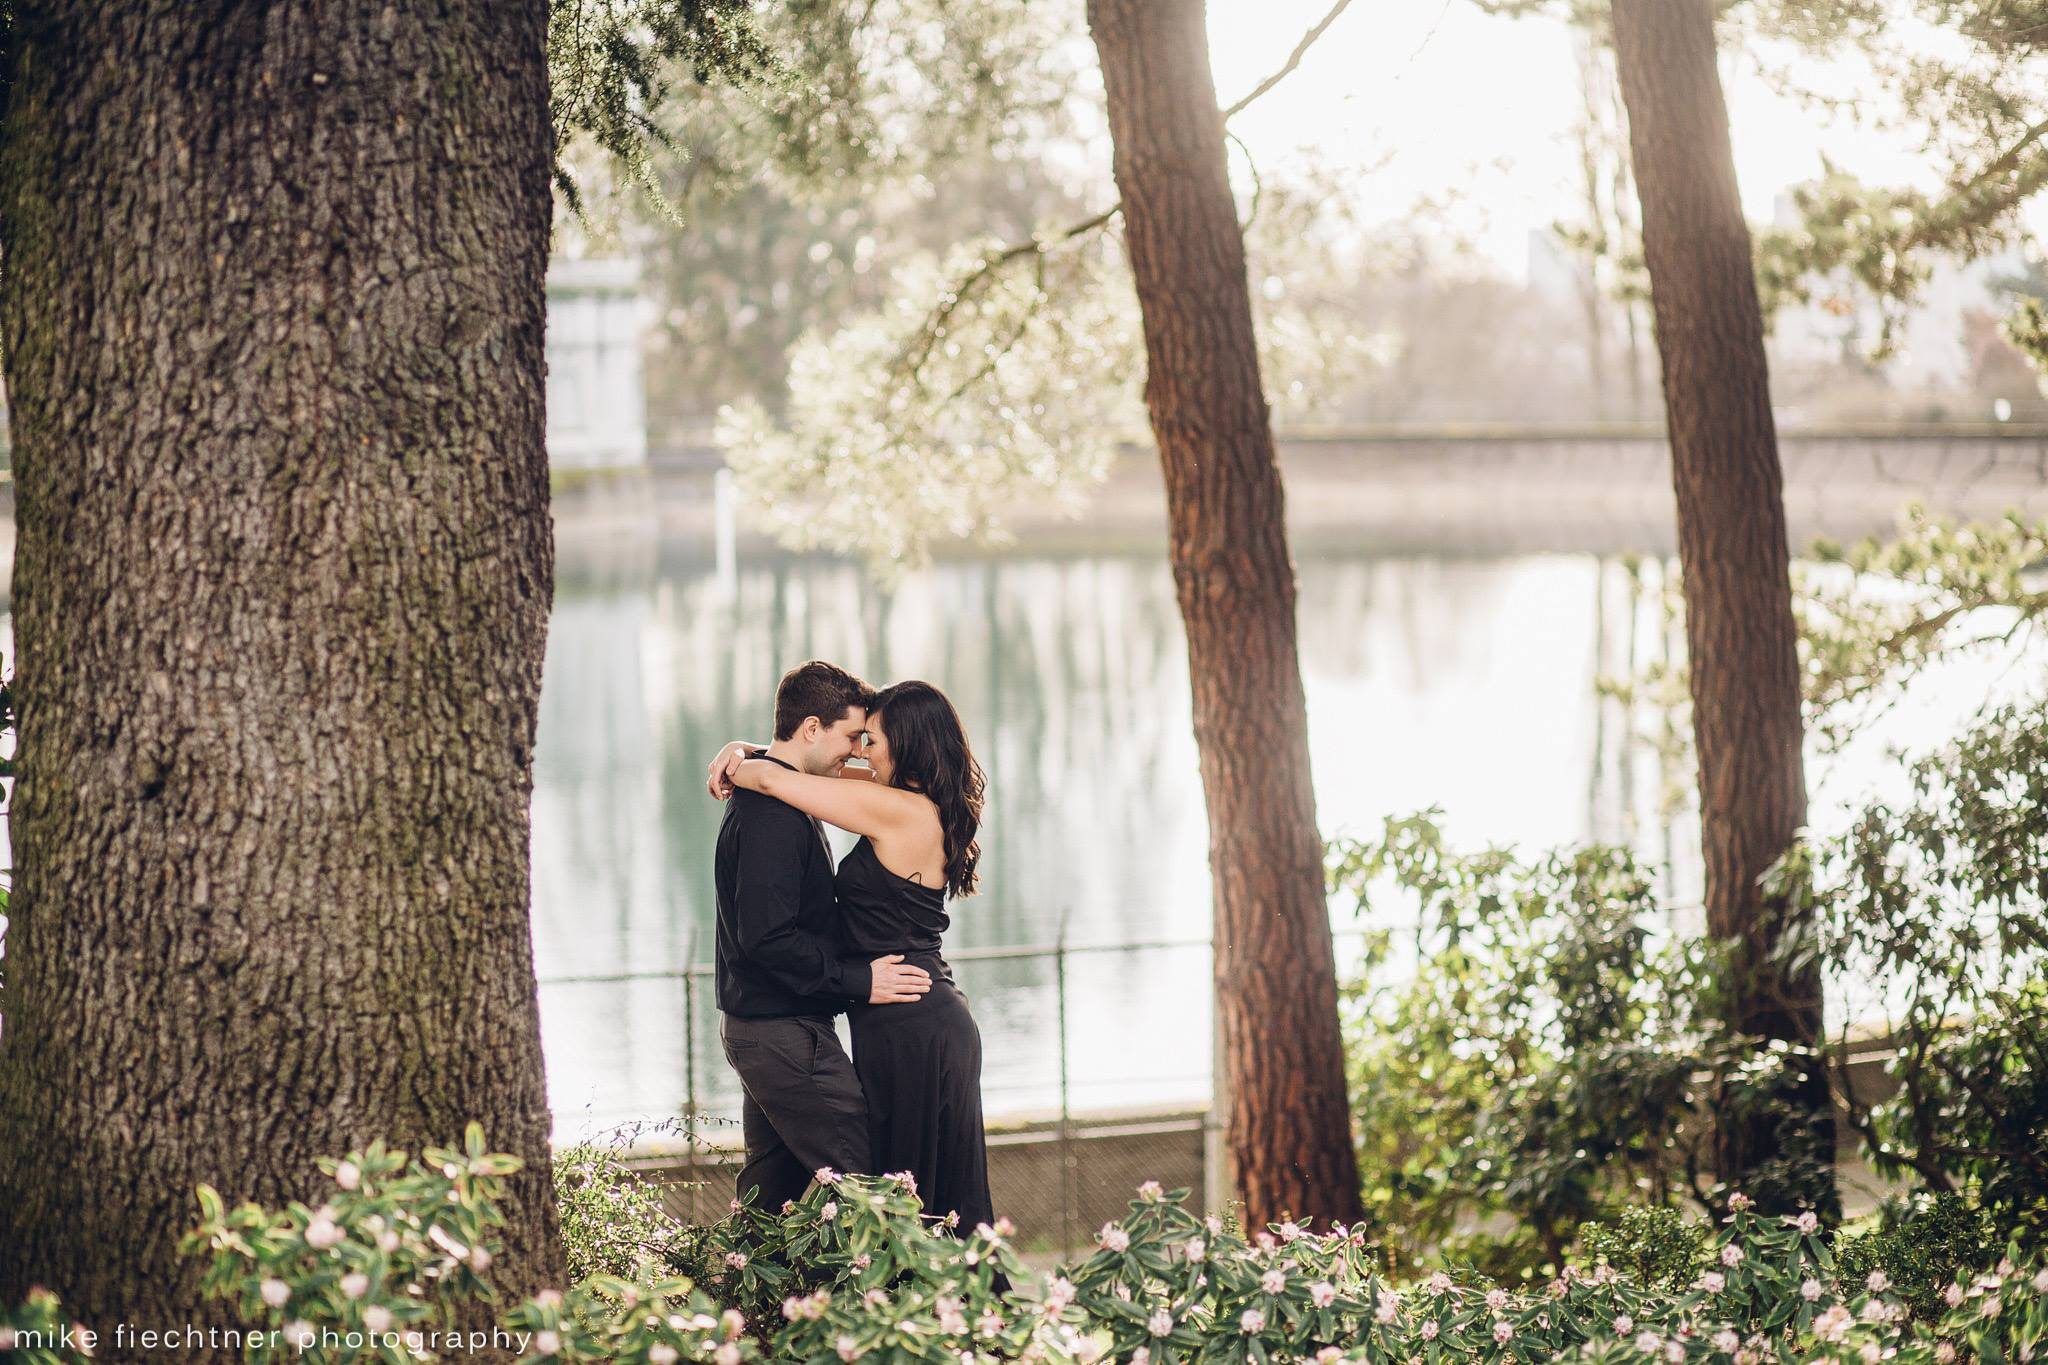 Seattle Engagement Shoot   Perfectly Posh Events, Seattle Wedding Planner   Mike Fiechtner Photography